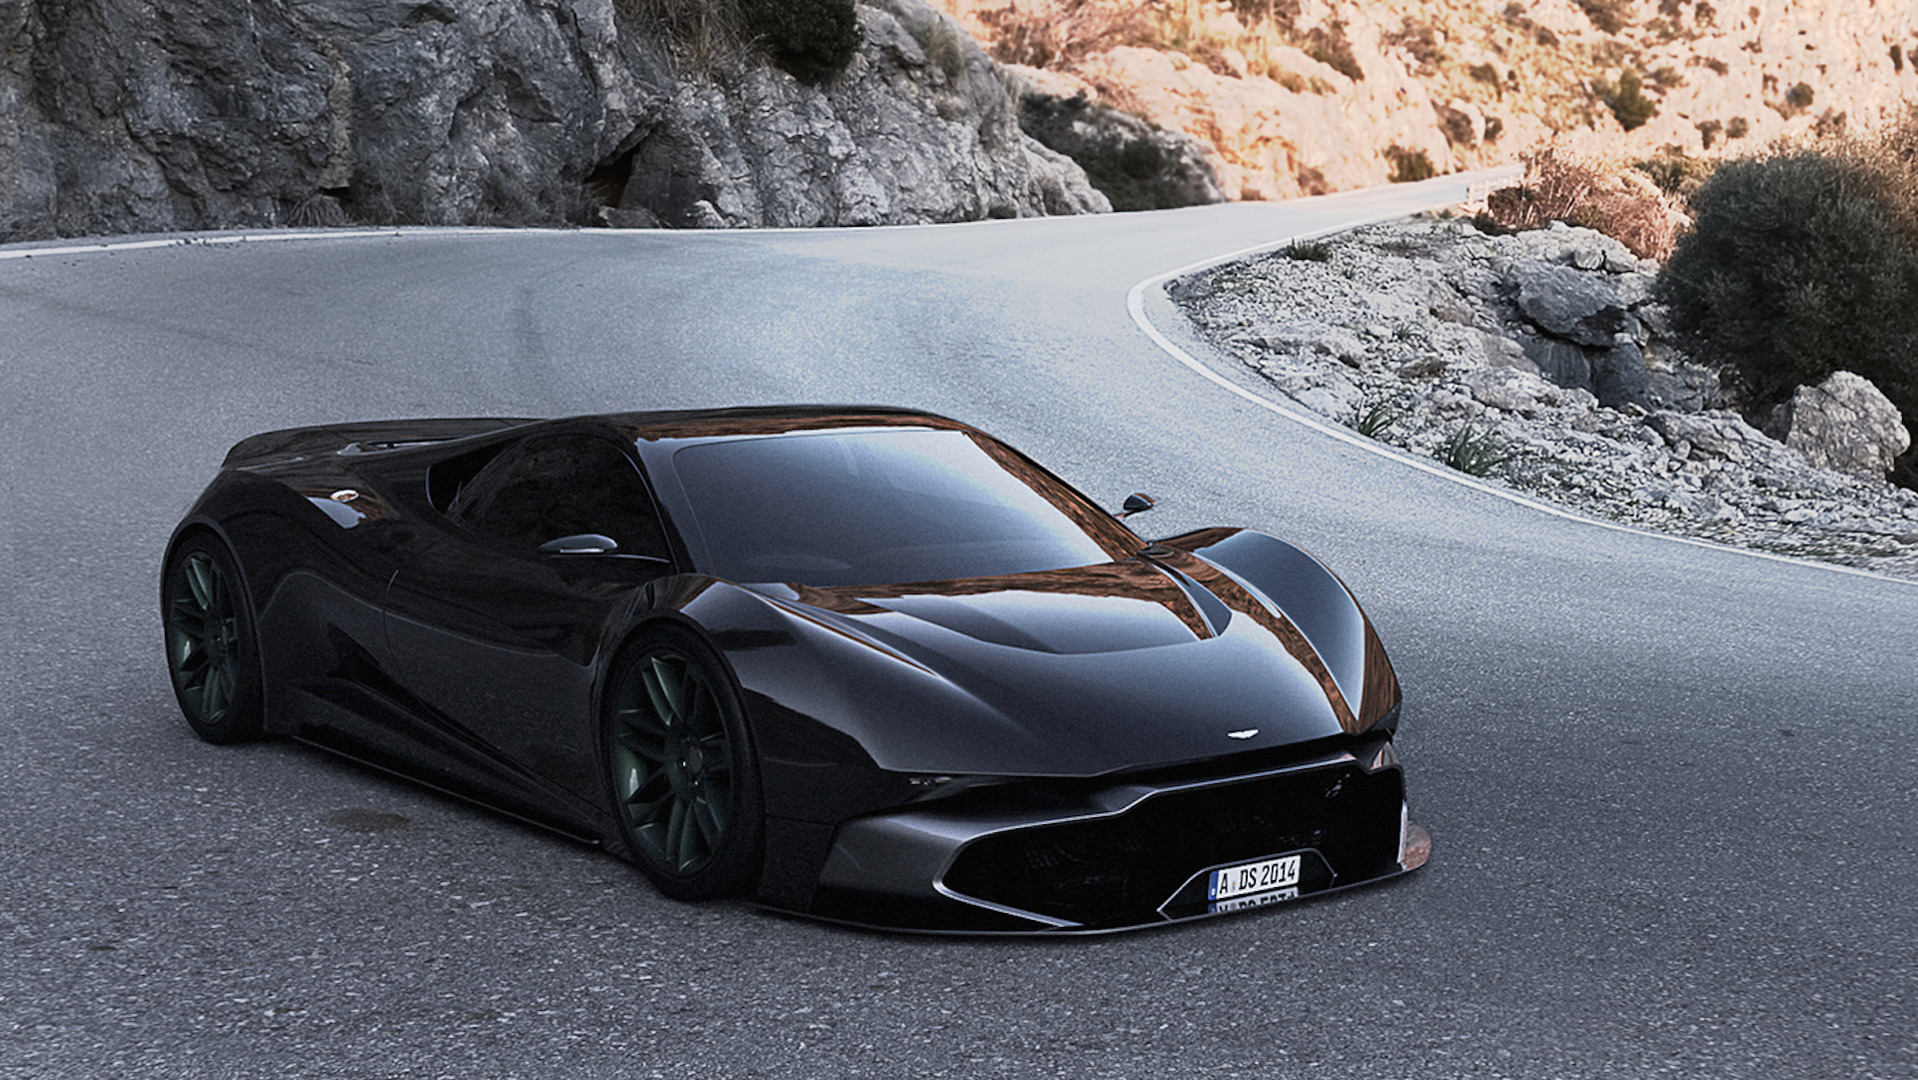 Aston Martin RR Concept Is A Stunning Supercar Proposal - Aston martin concept